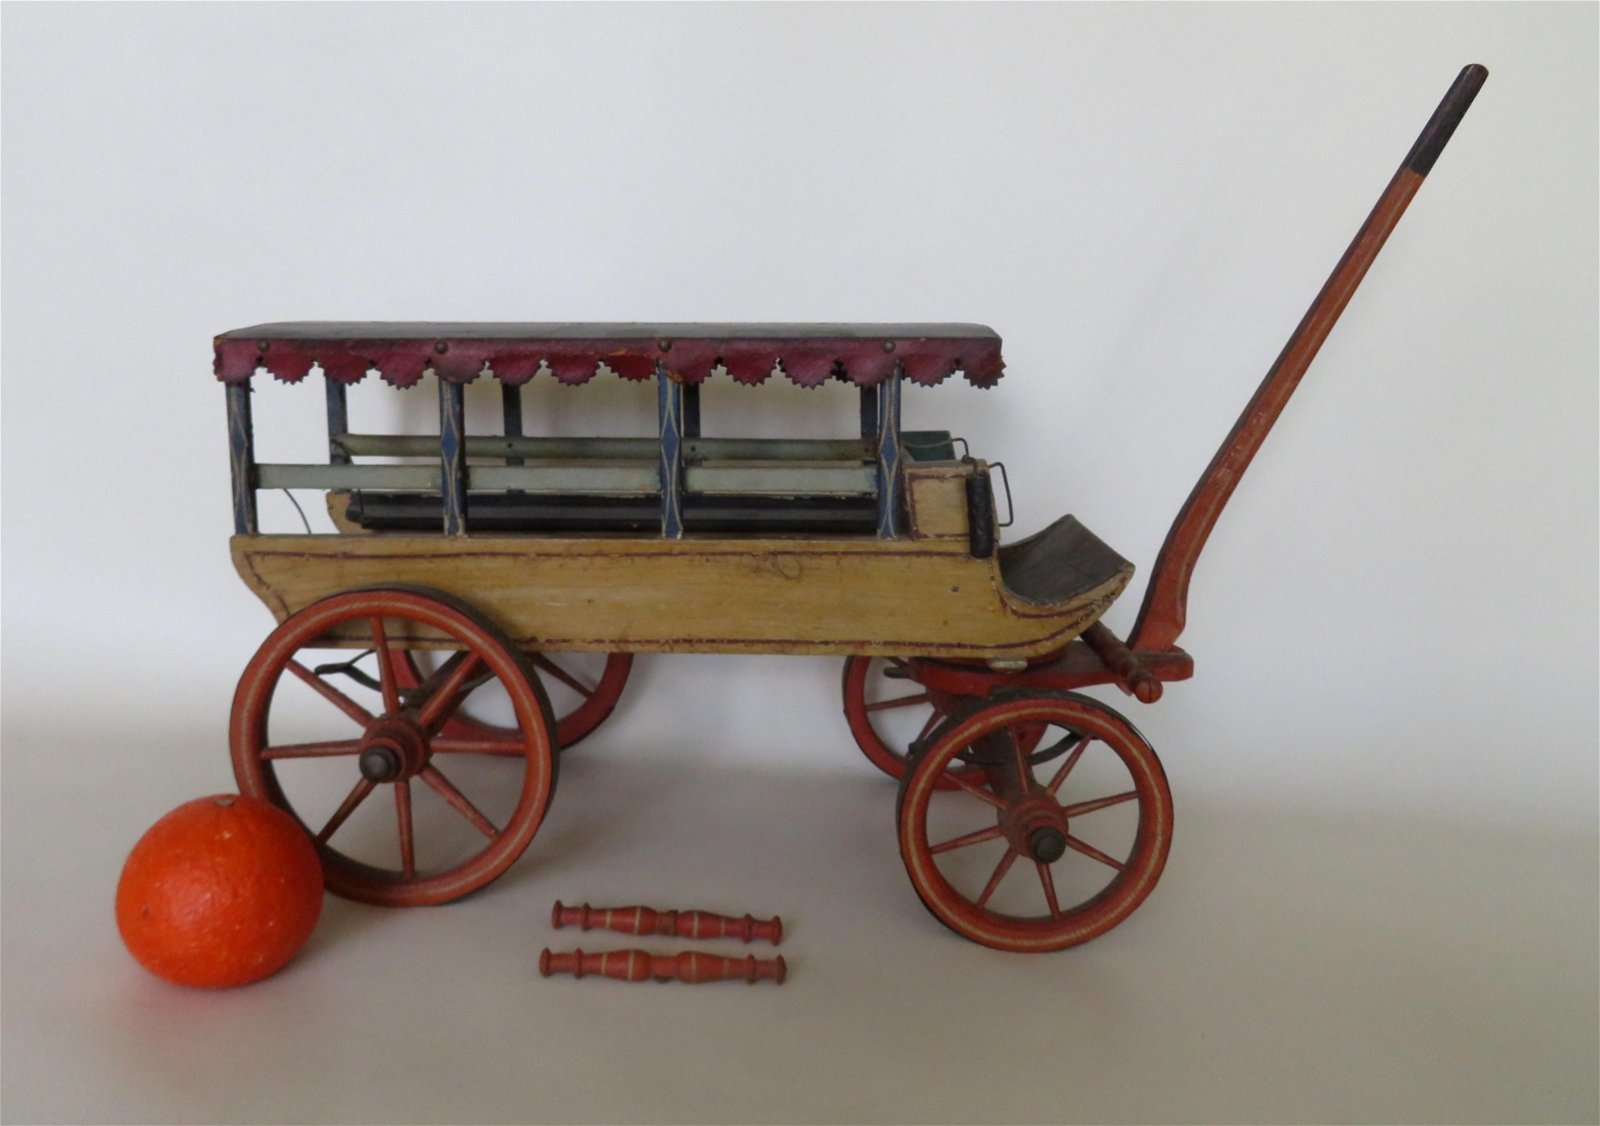 A toy or salesman sample model of a horse drawn covered